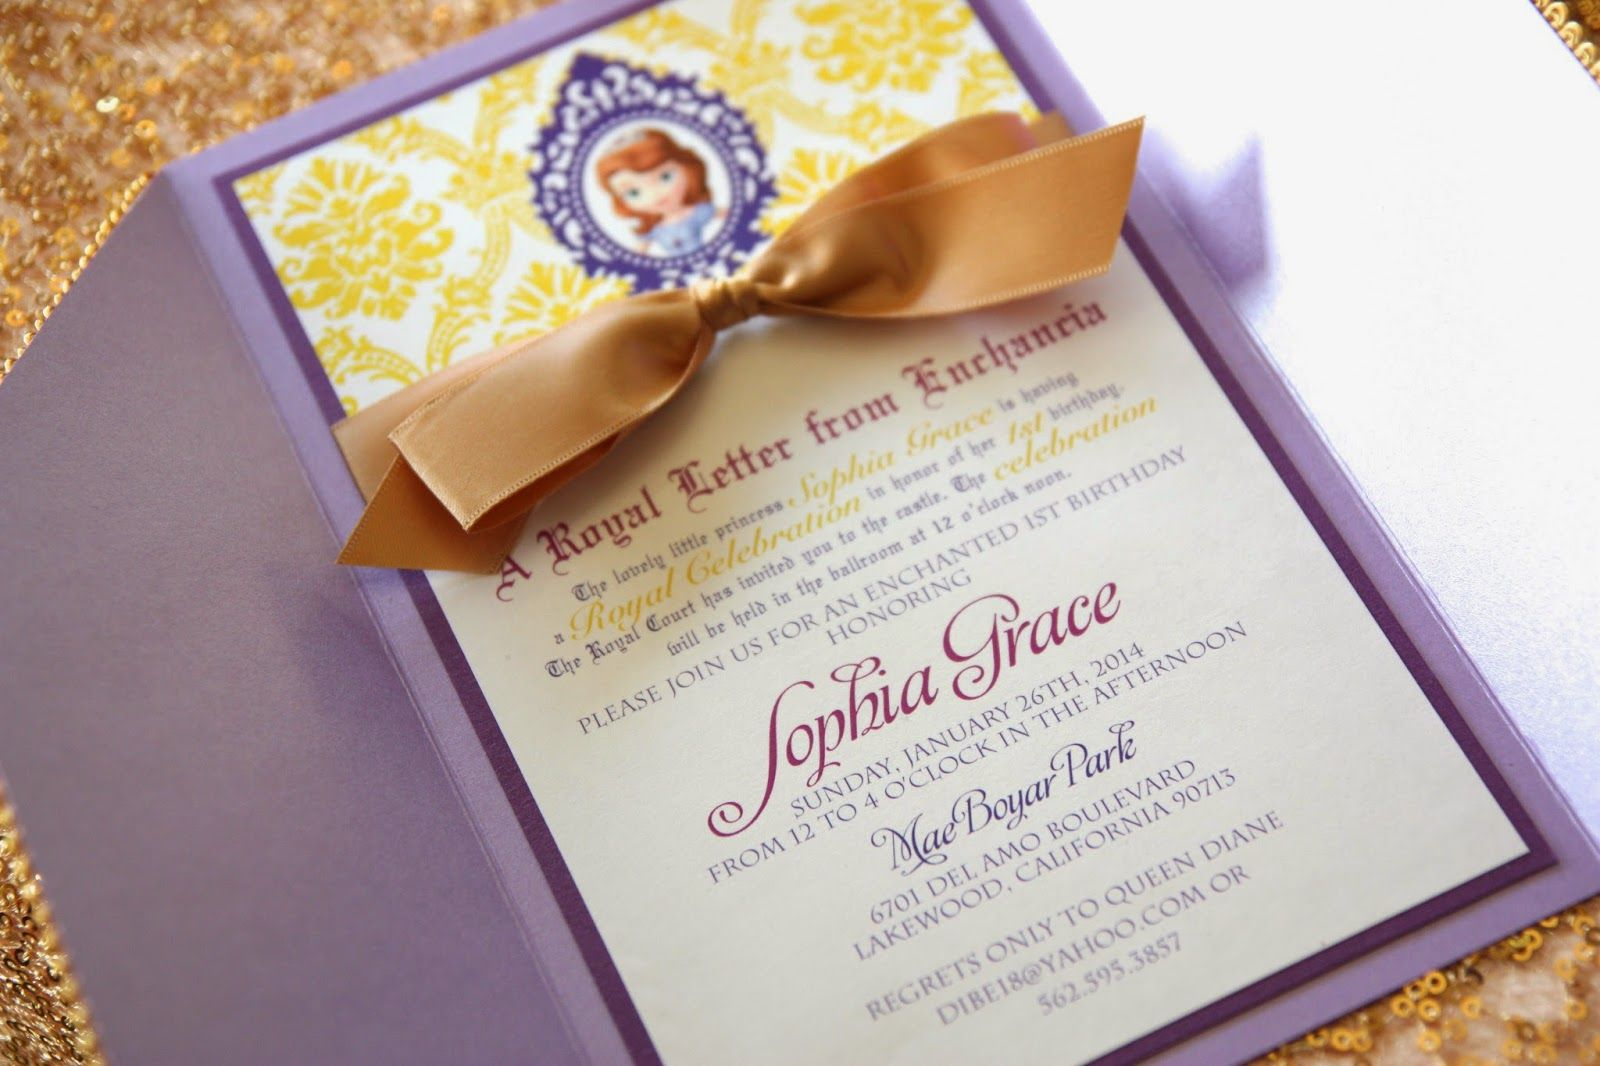 sofia the first invitations etsy - Google Search | My Princess ...